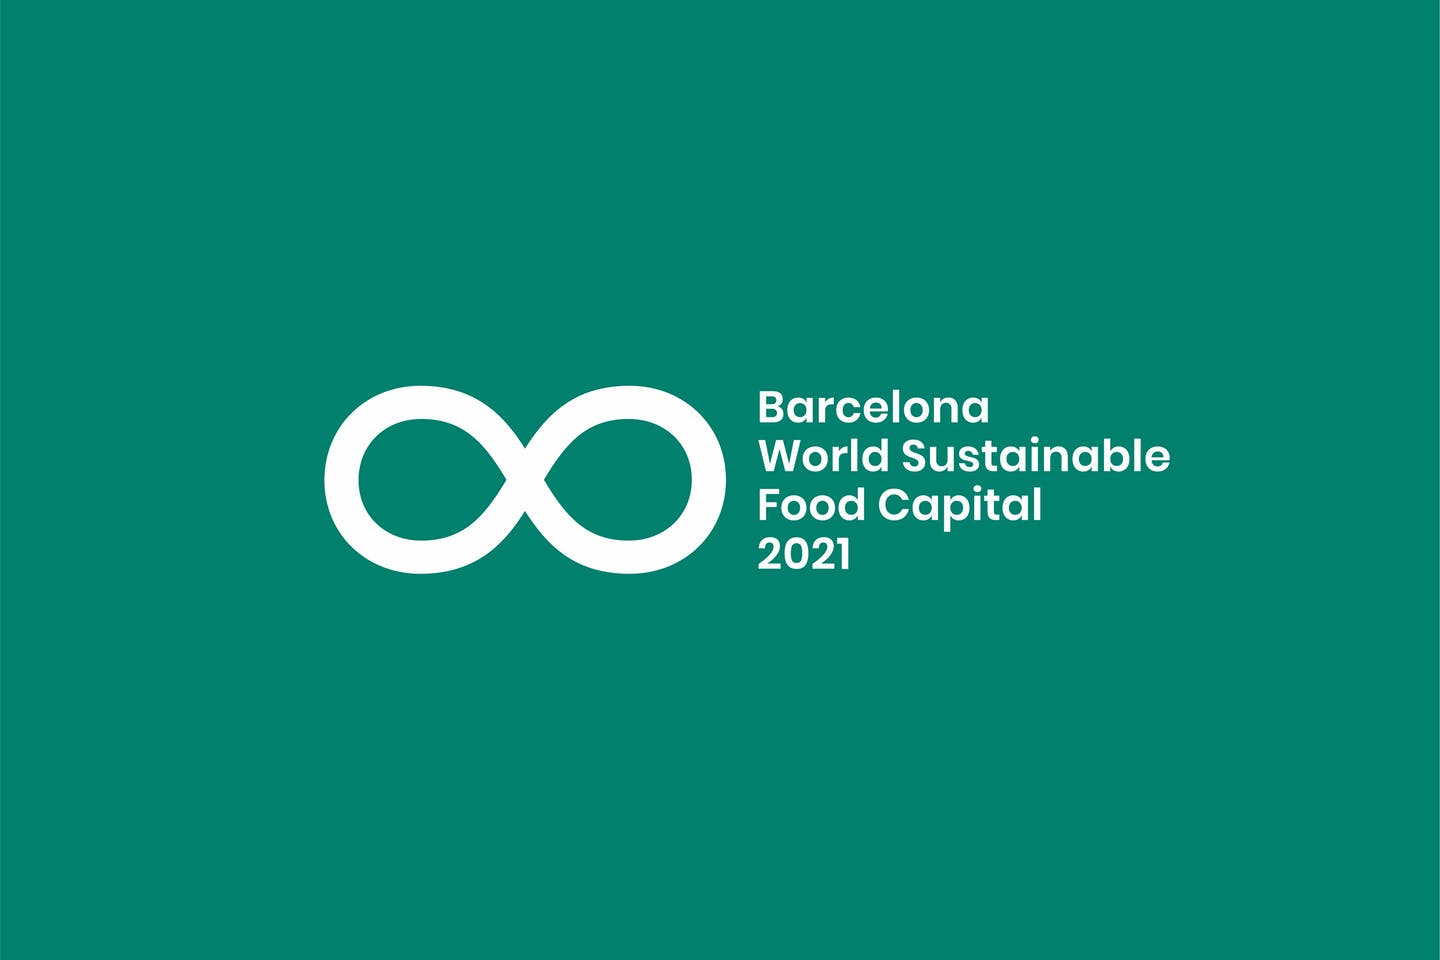 7th Milan Urban Food Policy Pact Global Forum